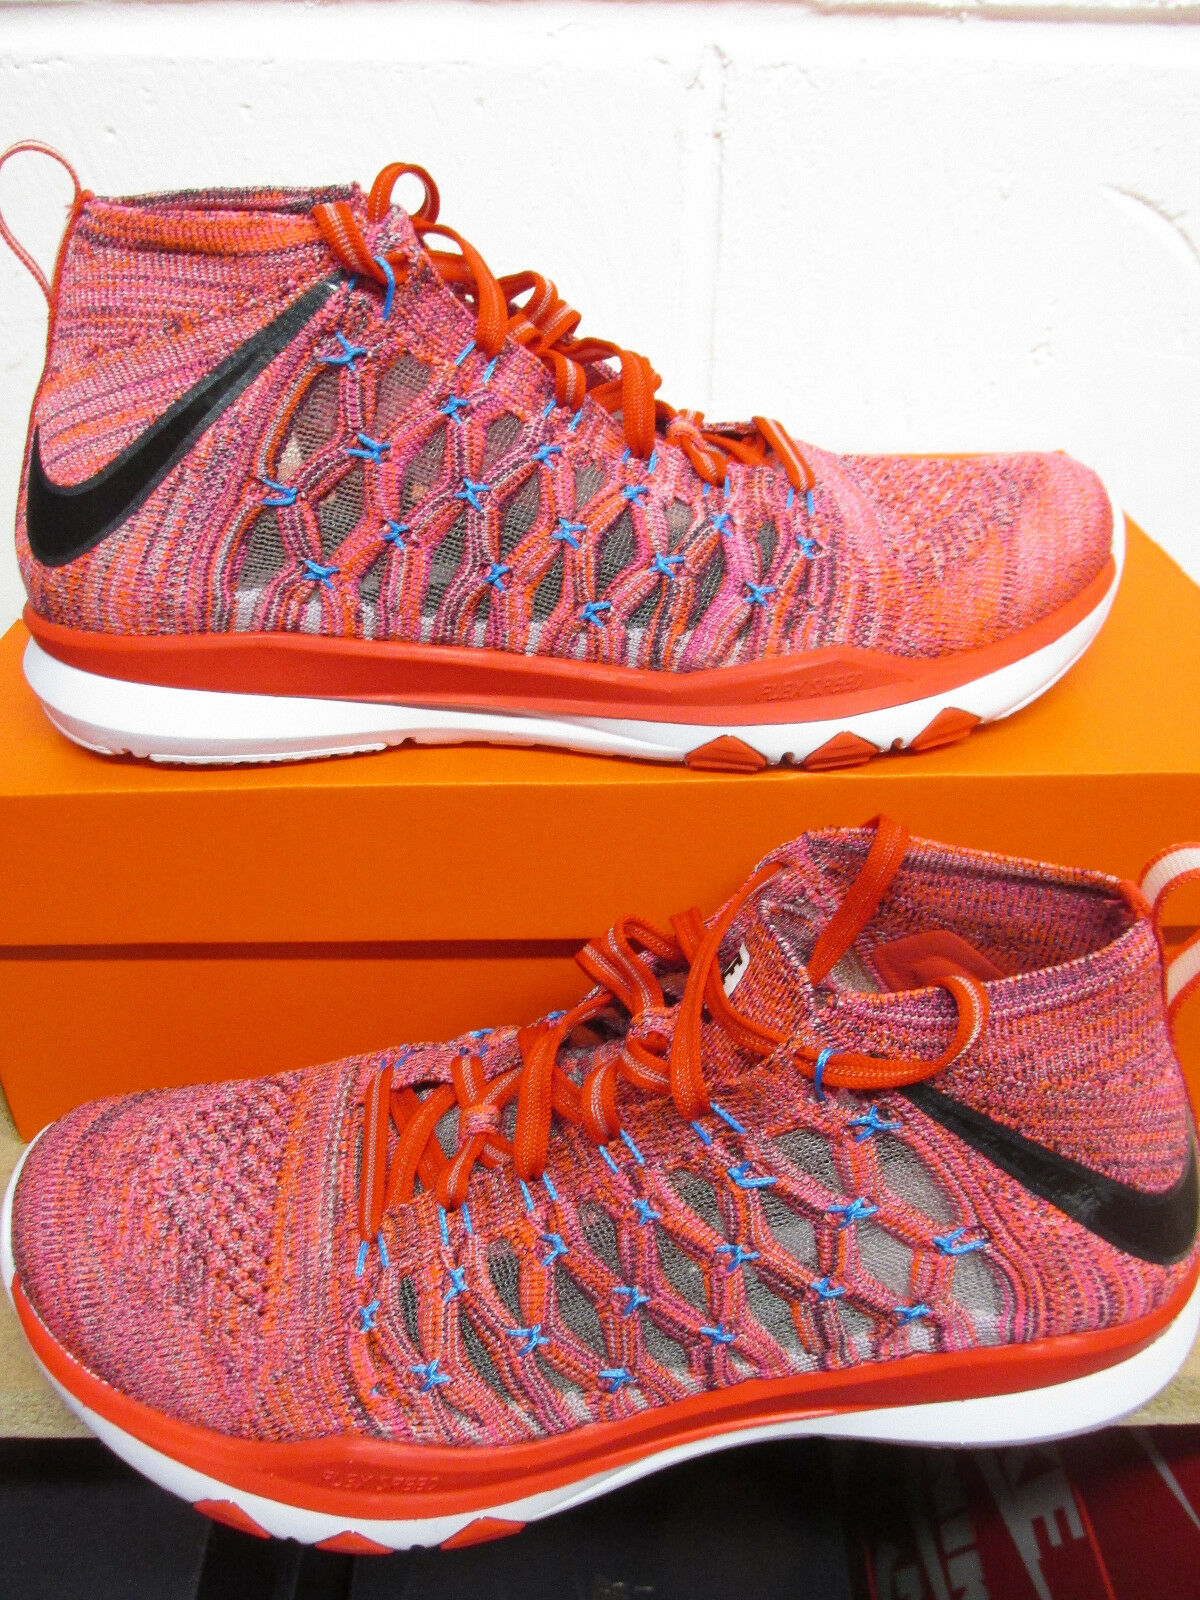 Nike Train Ultrafast Flyknit Mens Running Trainers 843694 500 Sneakers Shoes